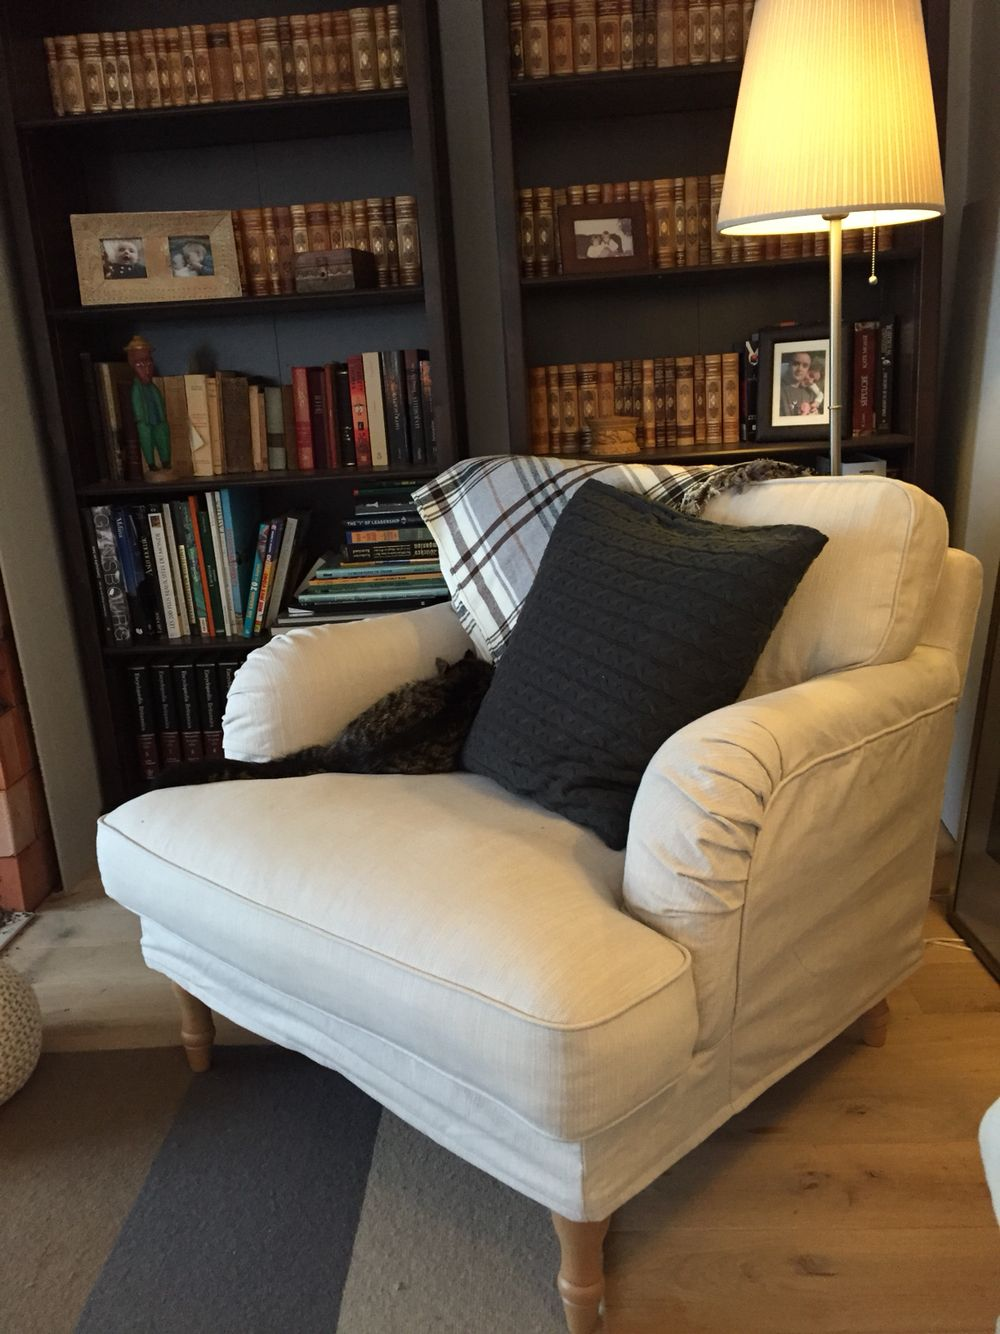 Ikea Stocksund chair, want! With a comfy footstool. Love ...